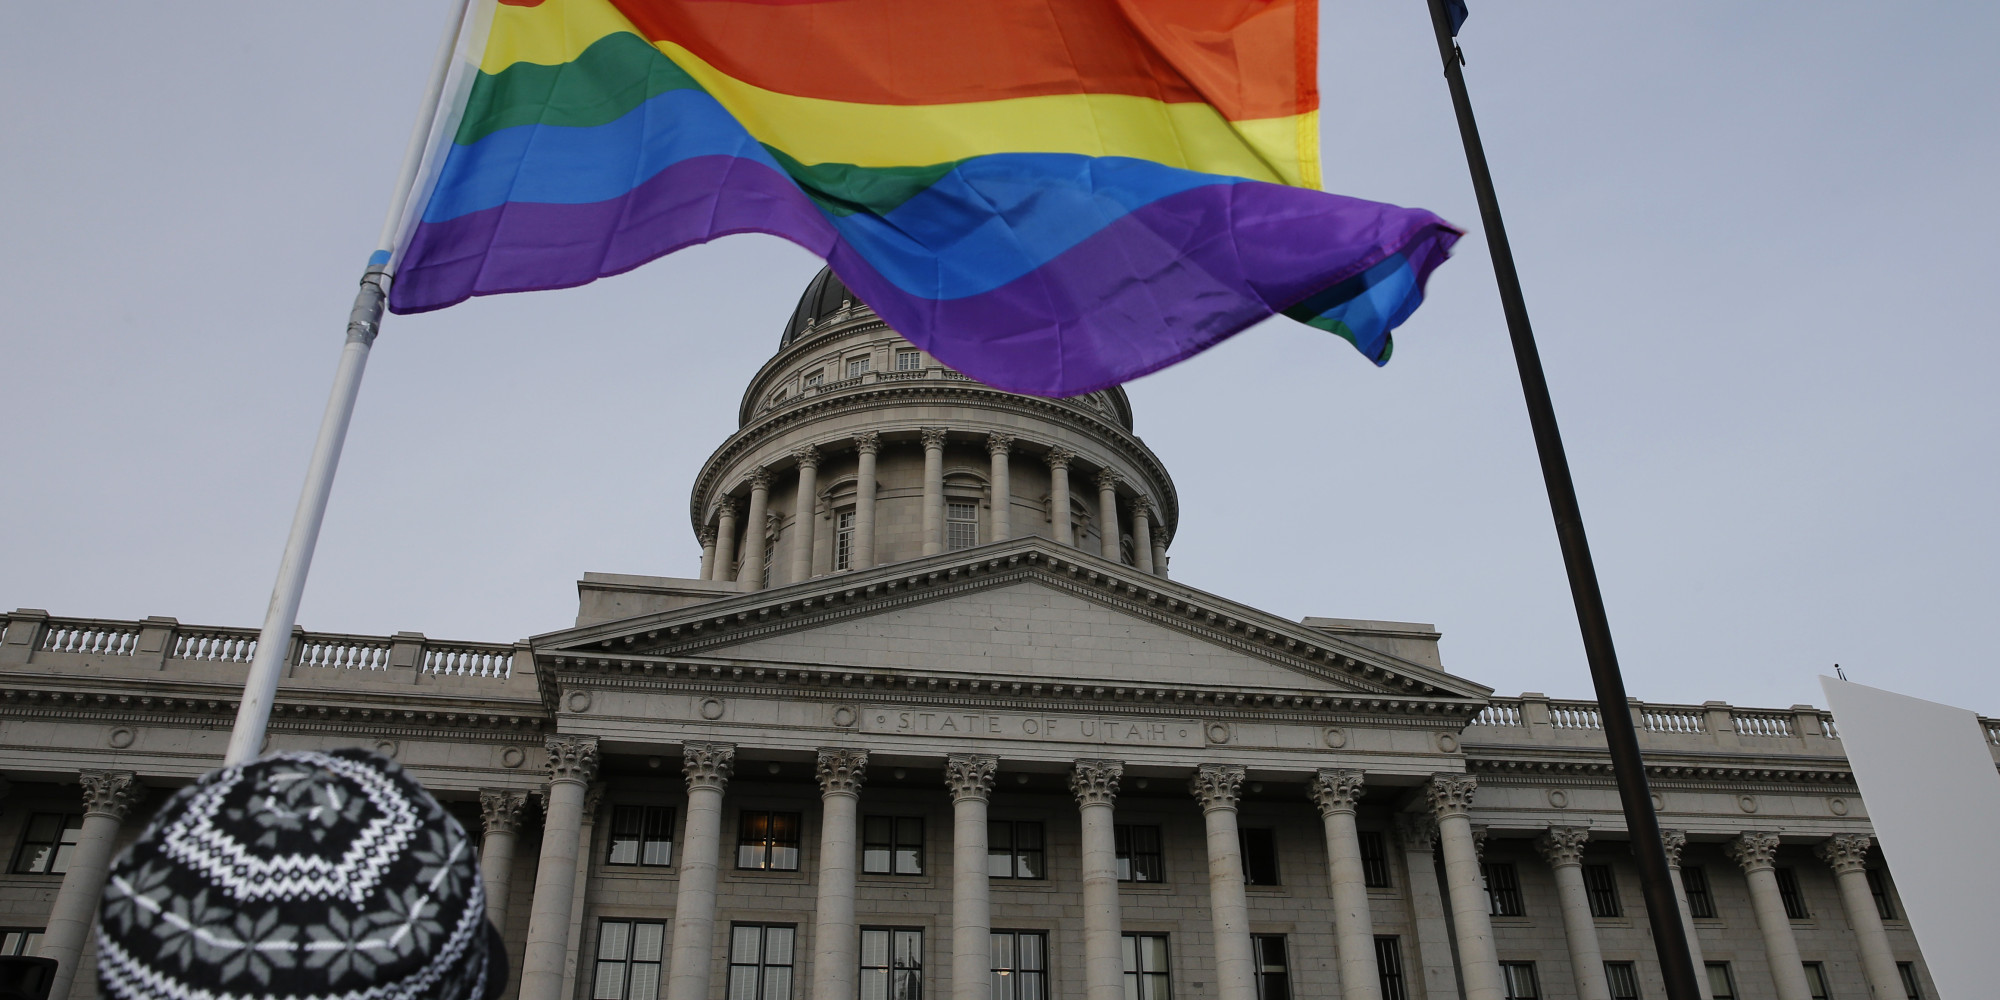 Utah To Appeal Gay Marriage Ban Ruling With Supreme Court